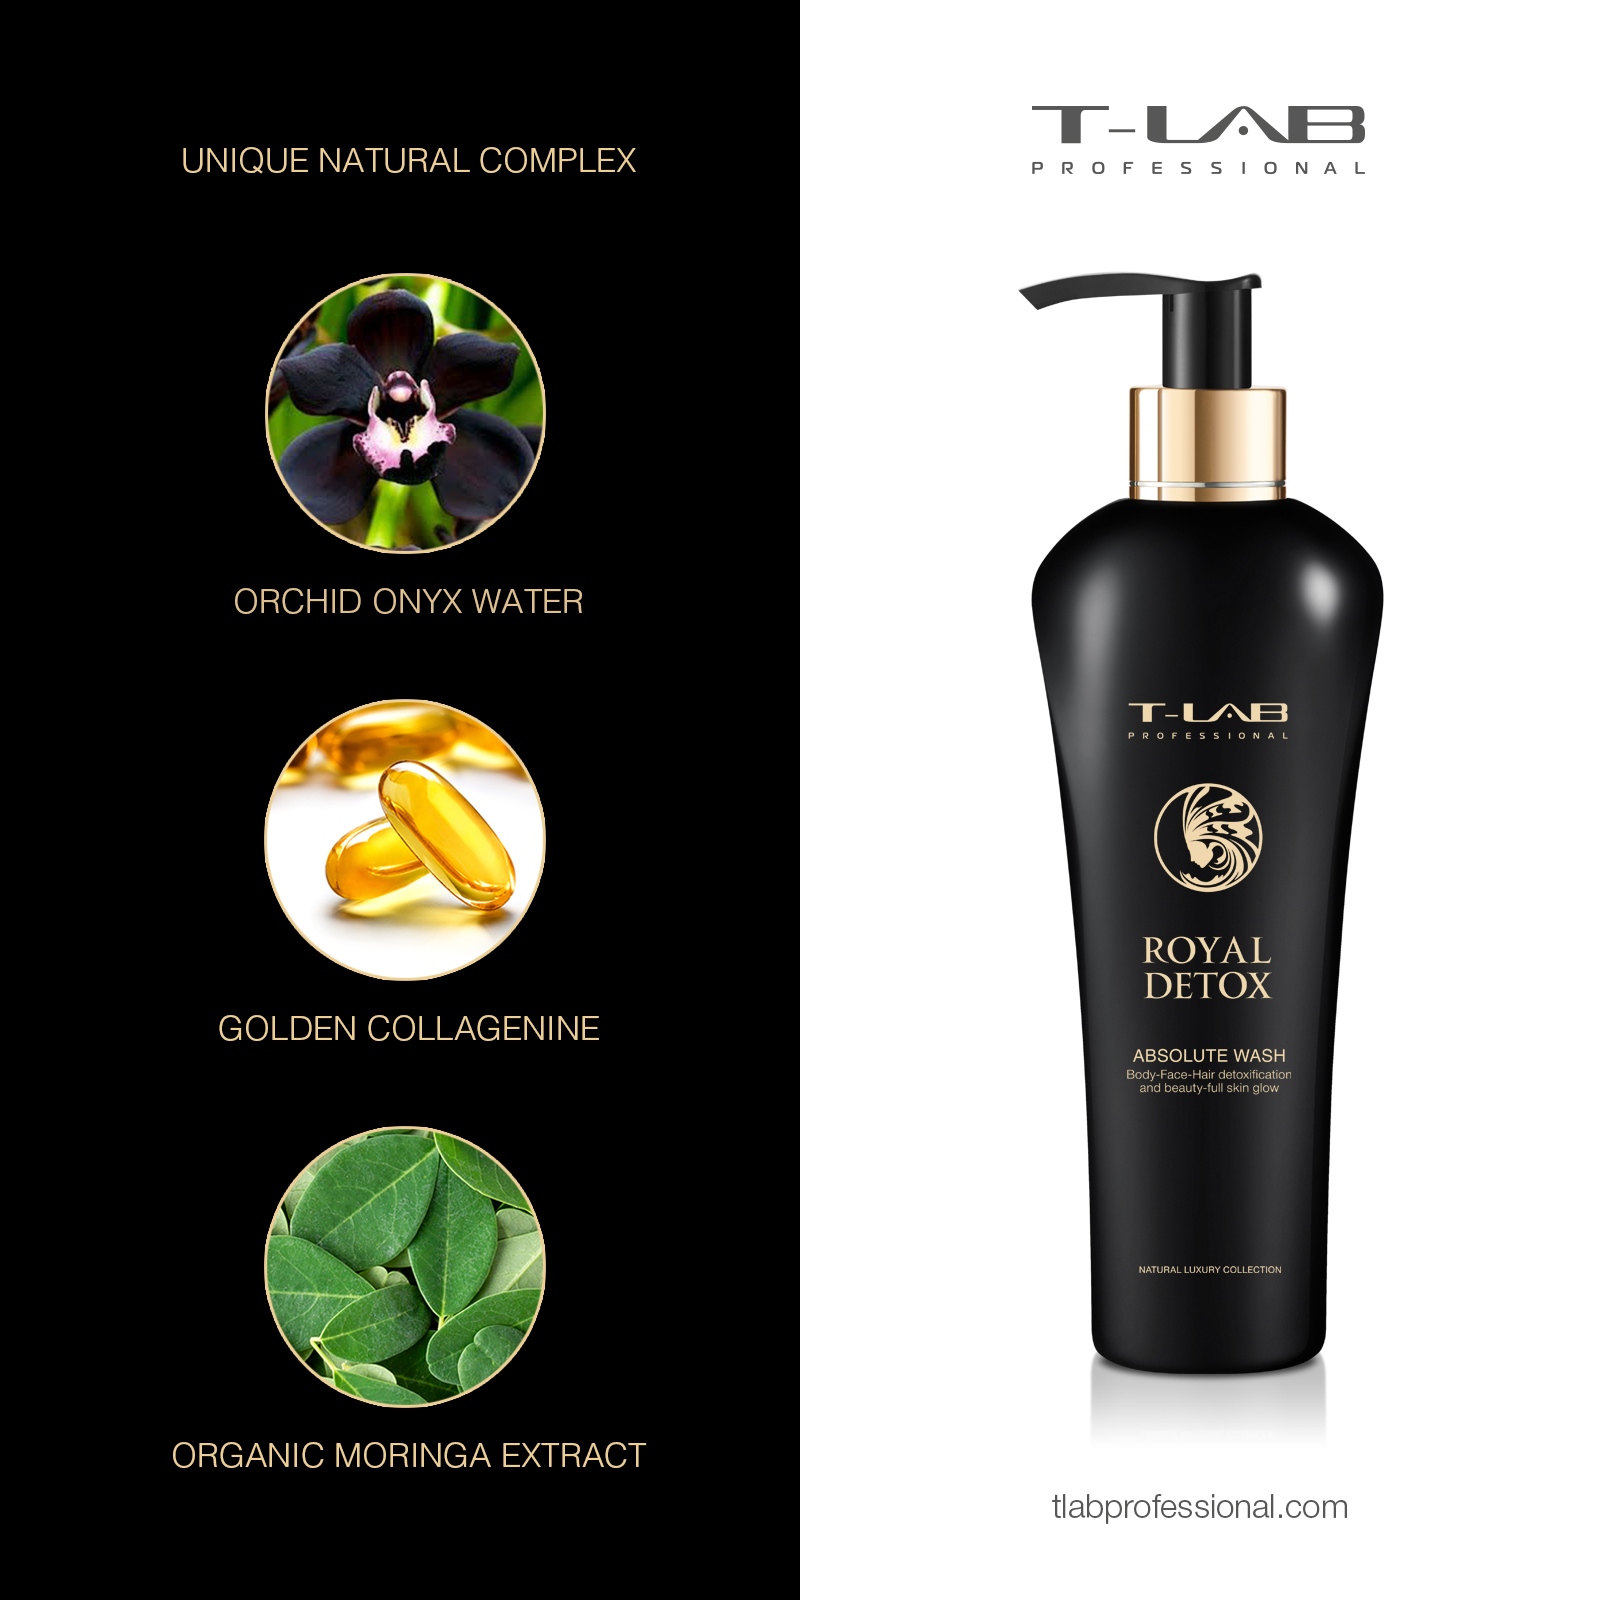 ROYAL DETOX Absolute Wash: Orchid Onyx Water, Organic Moringa Extract, Golden Collagenine